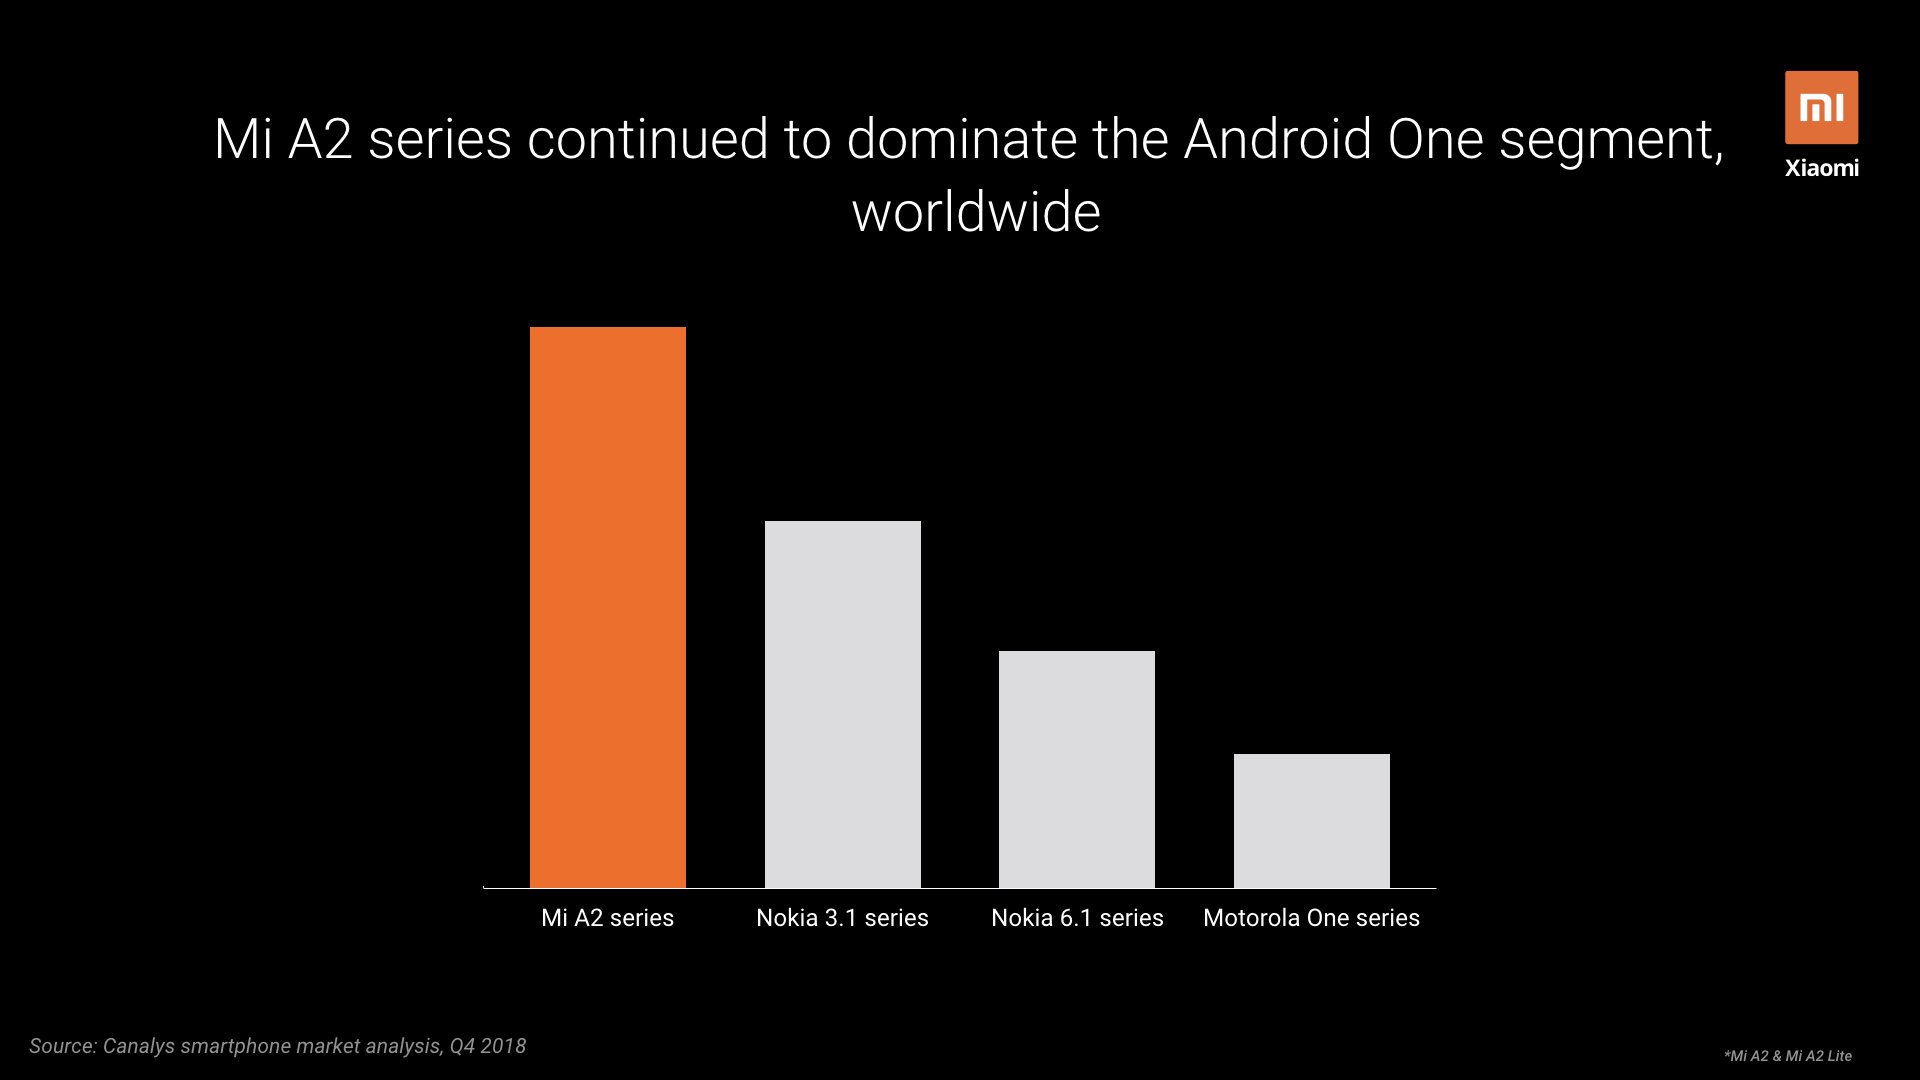 Xiaomi Mi A-series models are the top-selling Android One 2